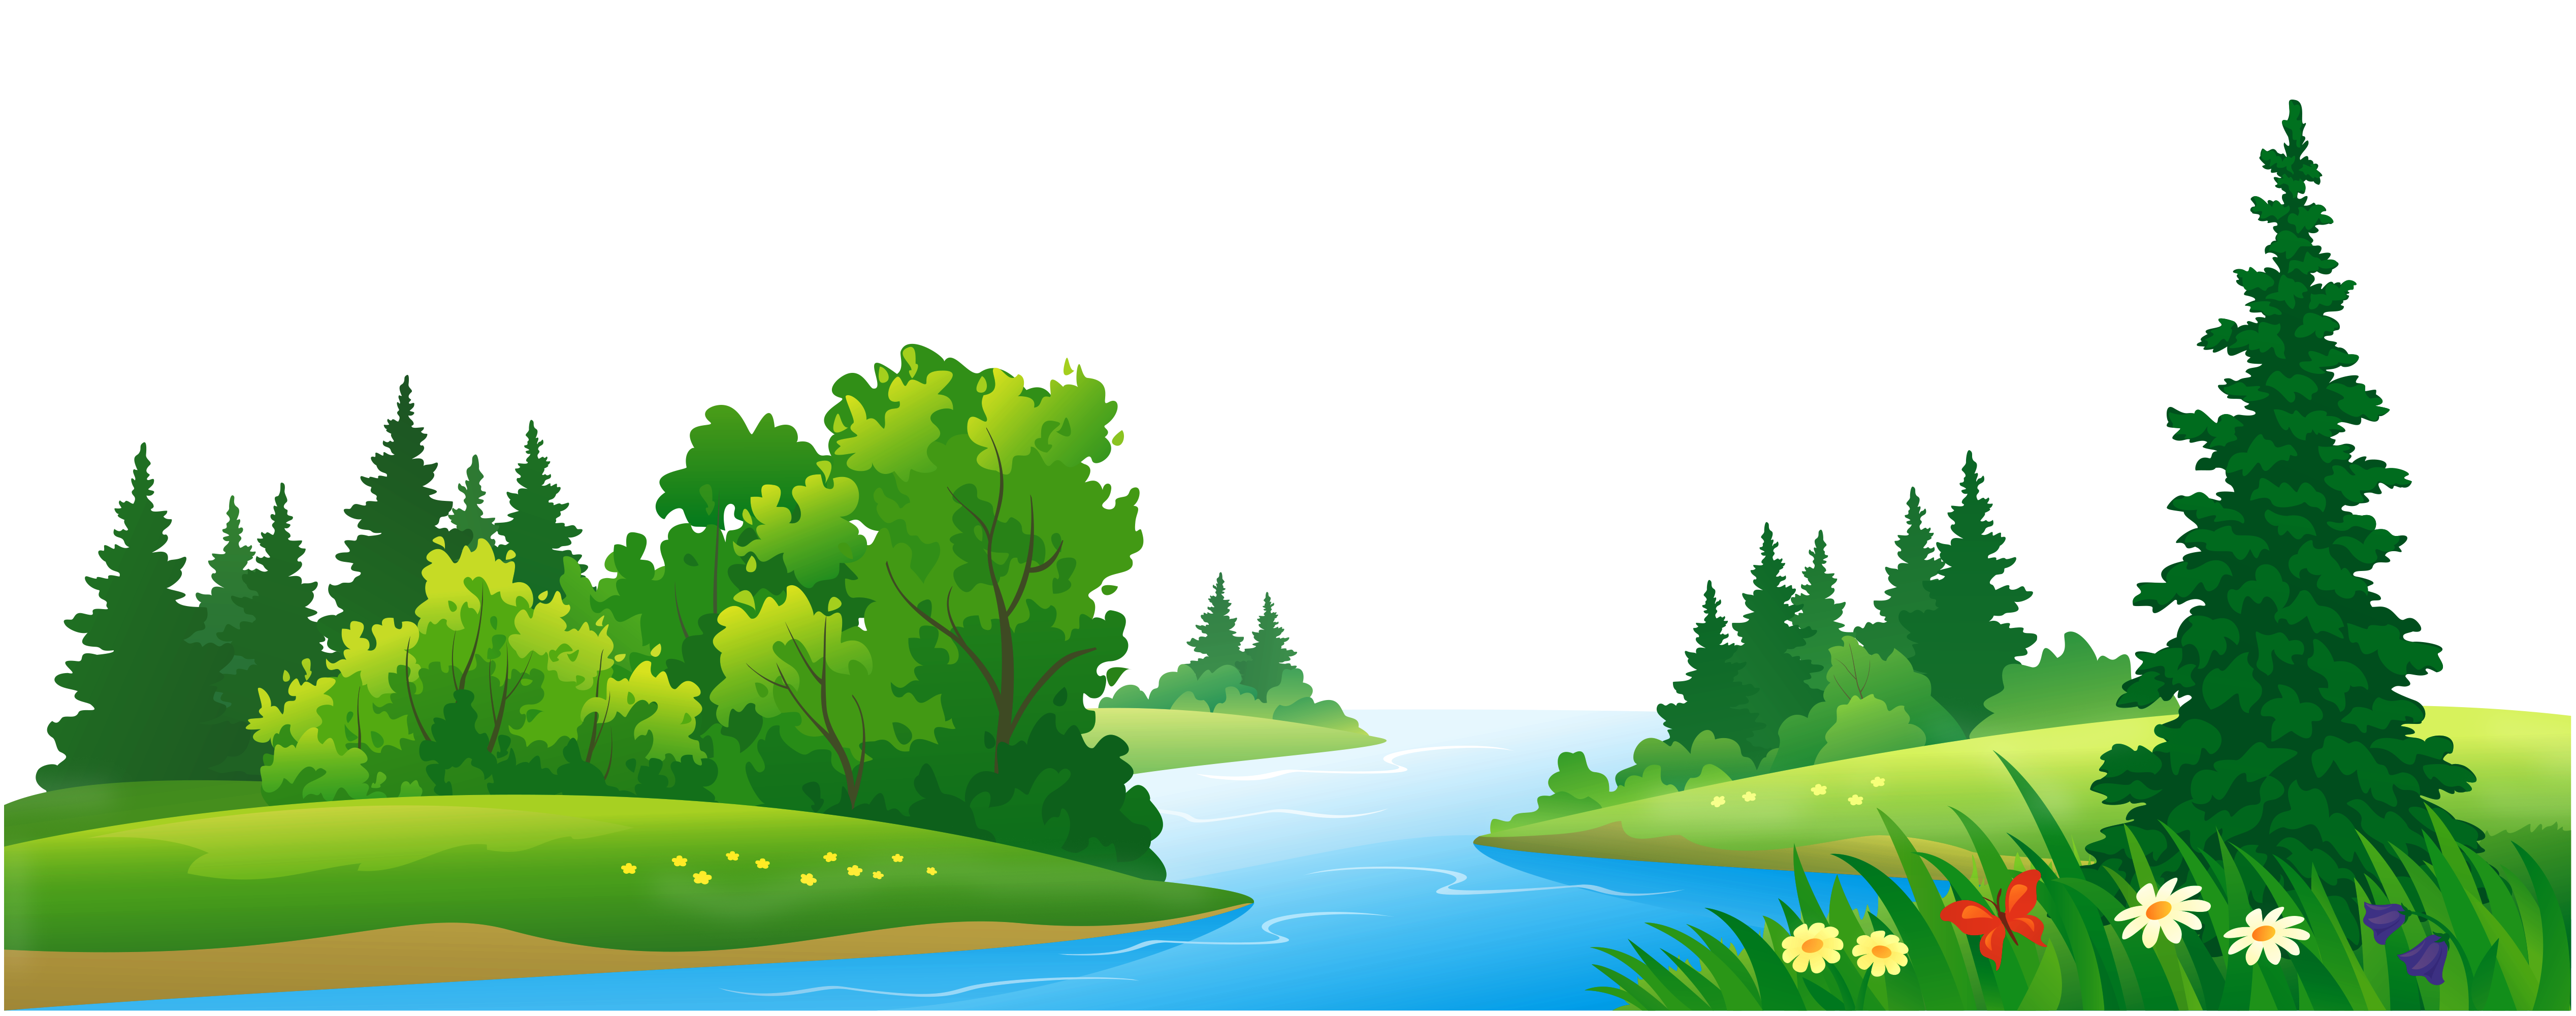 png transparent download Lake Clipart jungle